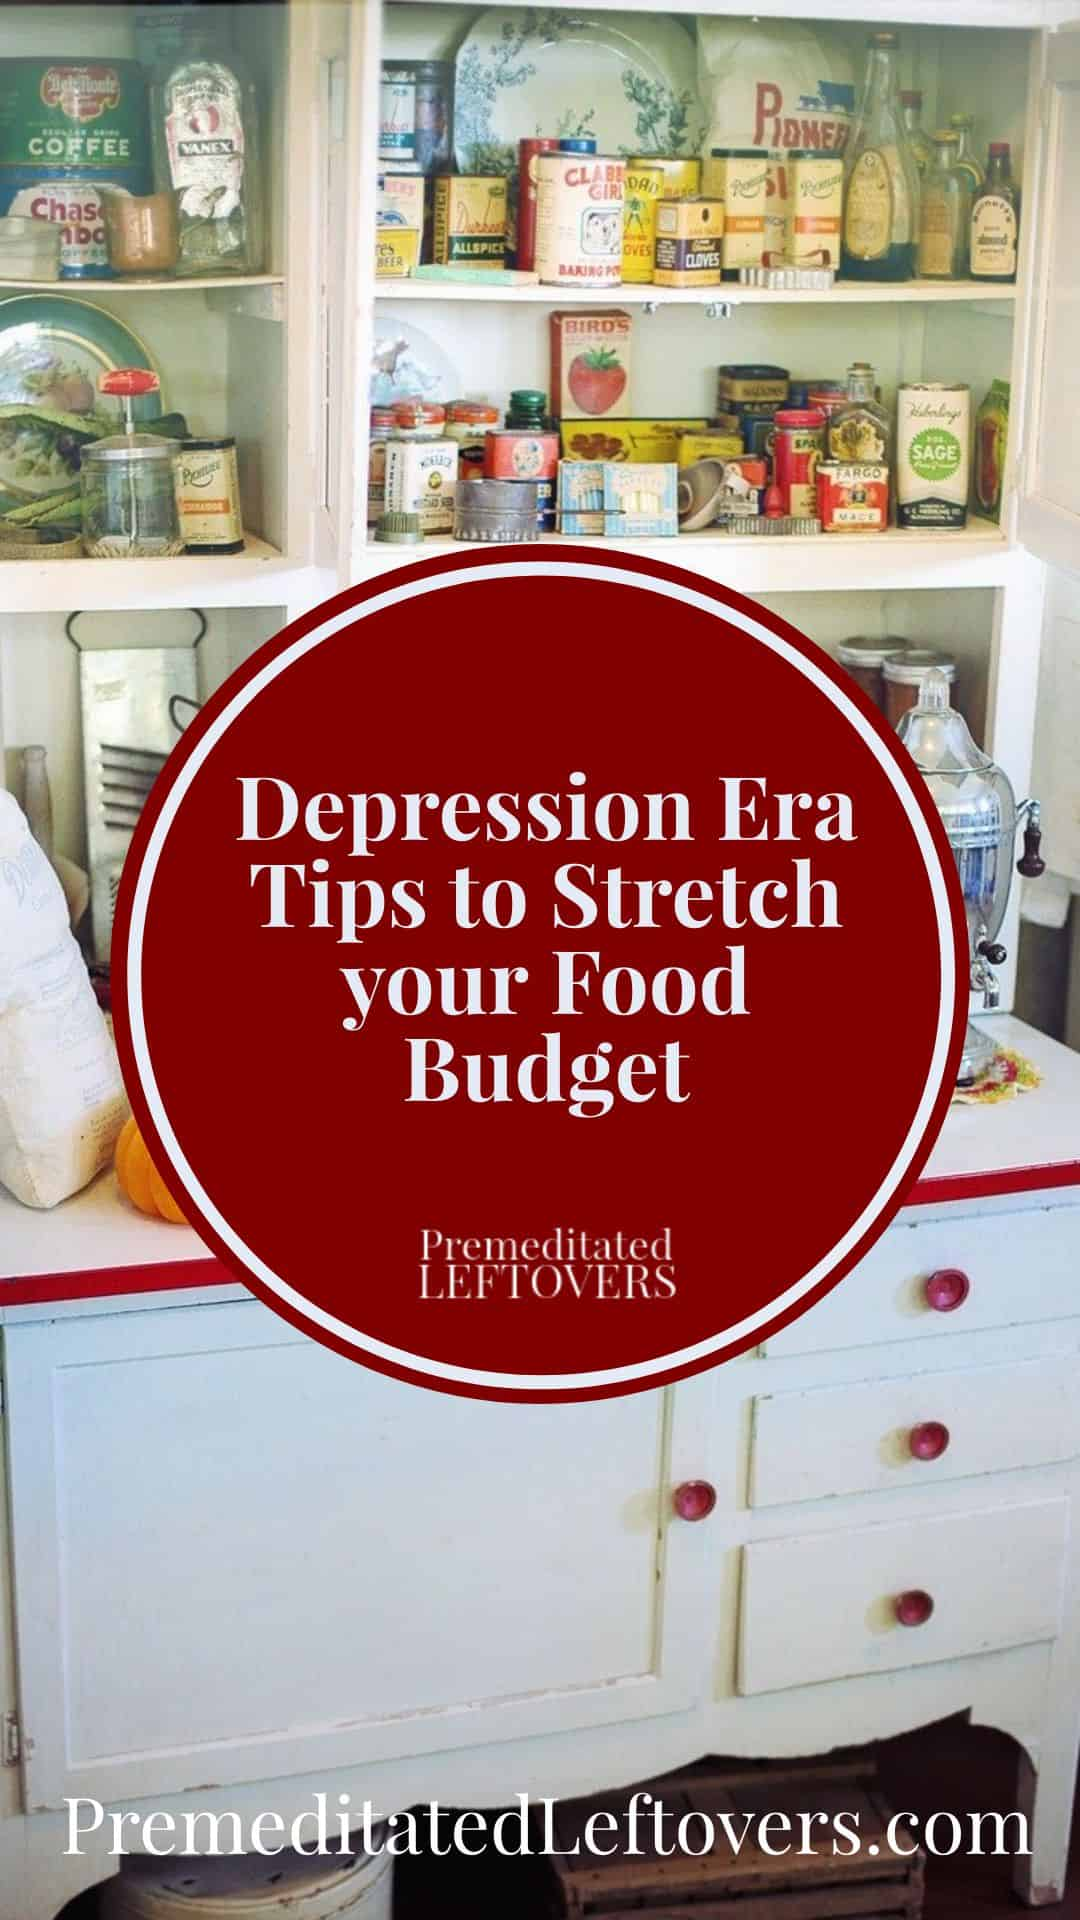 Use these Great Depression Era Tips to Stretch your Food Budget! Includes tips on making food last longer, frugal cooking tips, and old-fashioned money-saving grocery ideas that your Grandma used.